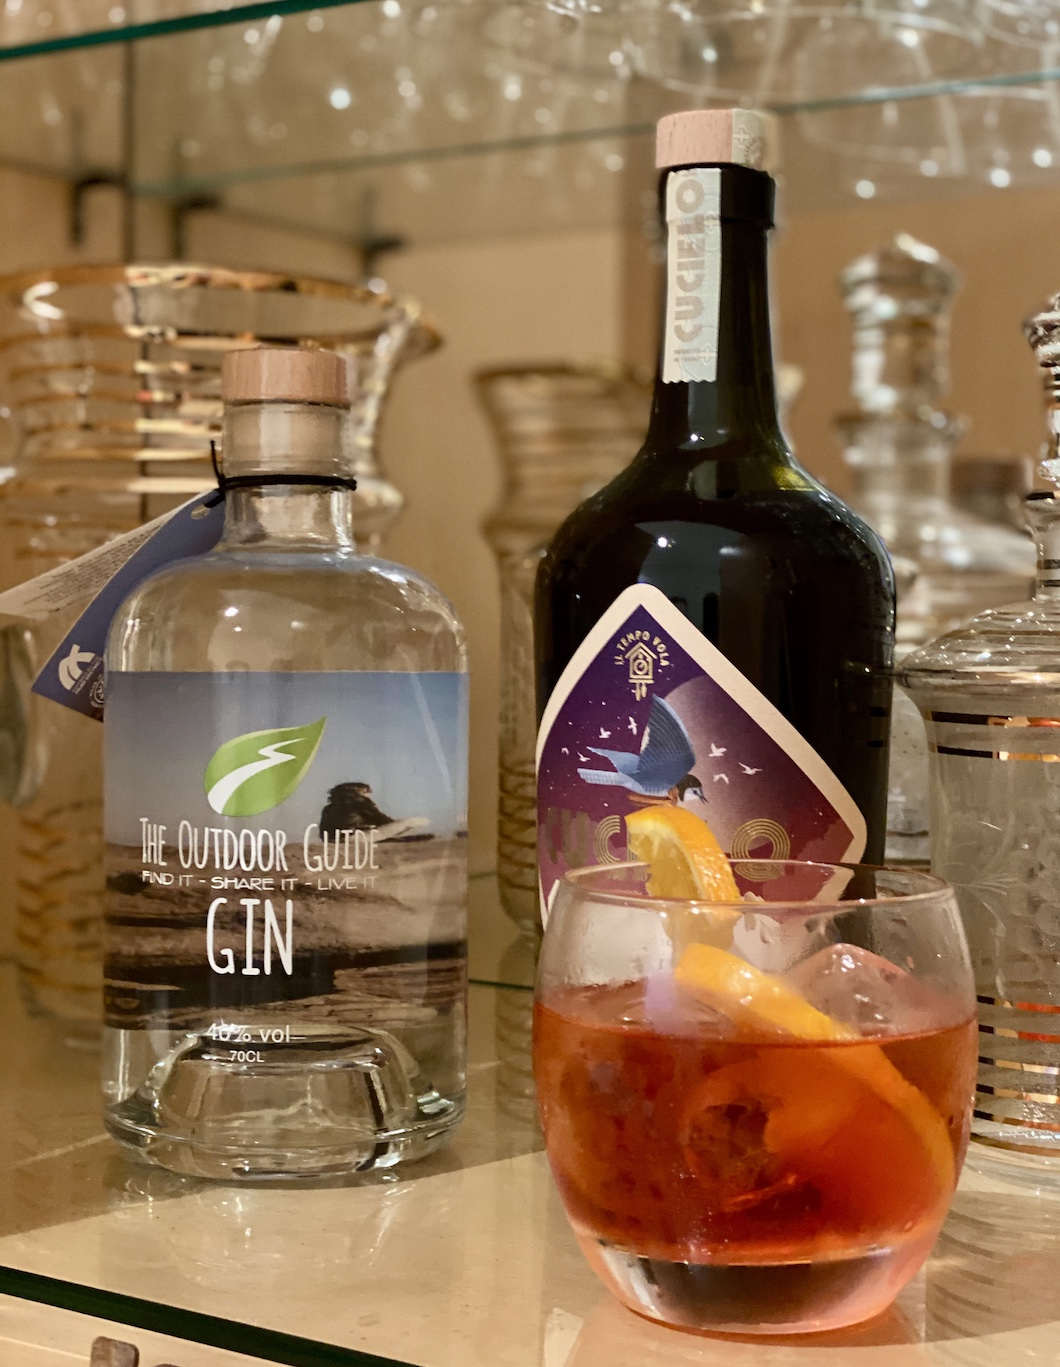 Cucielo Vermouth The Outdoor Guide Gin and negroni 2